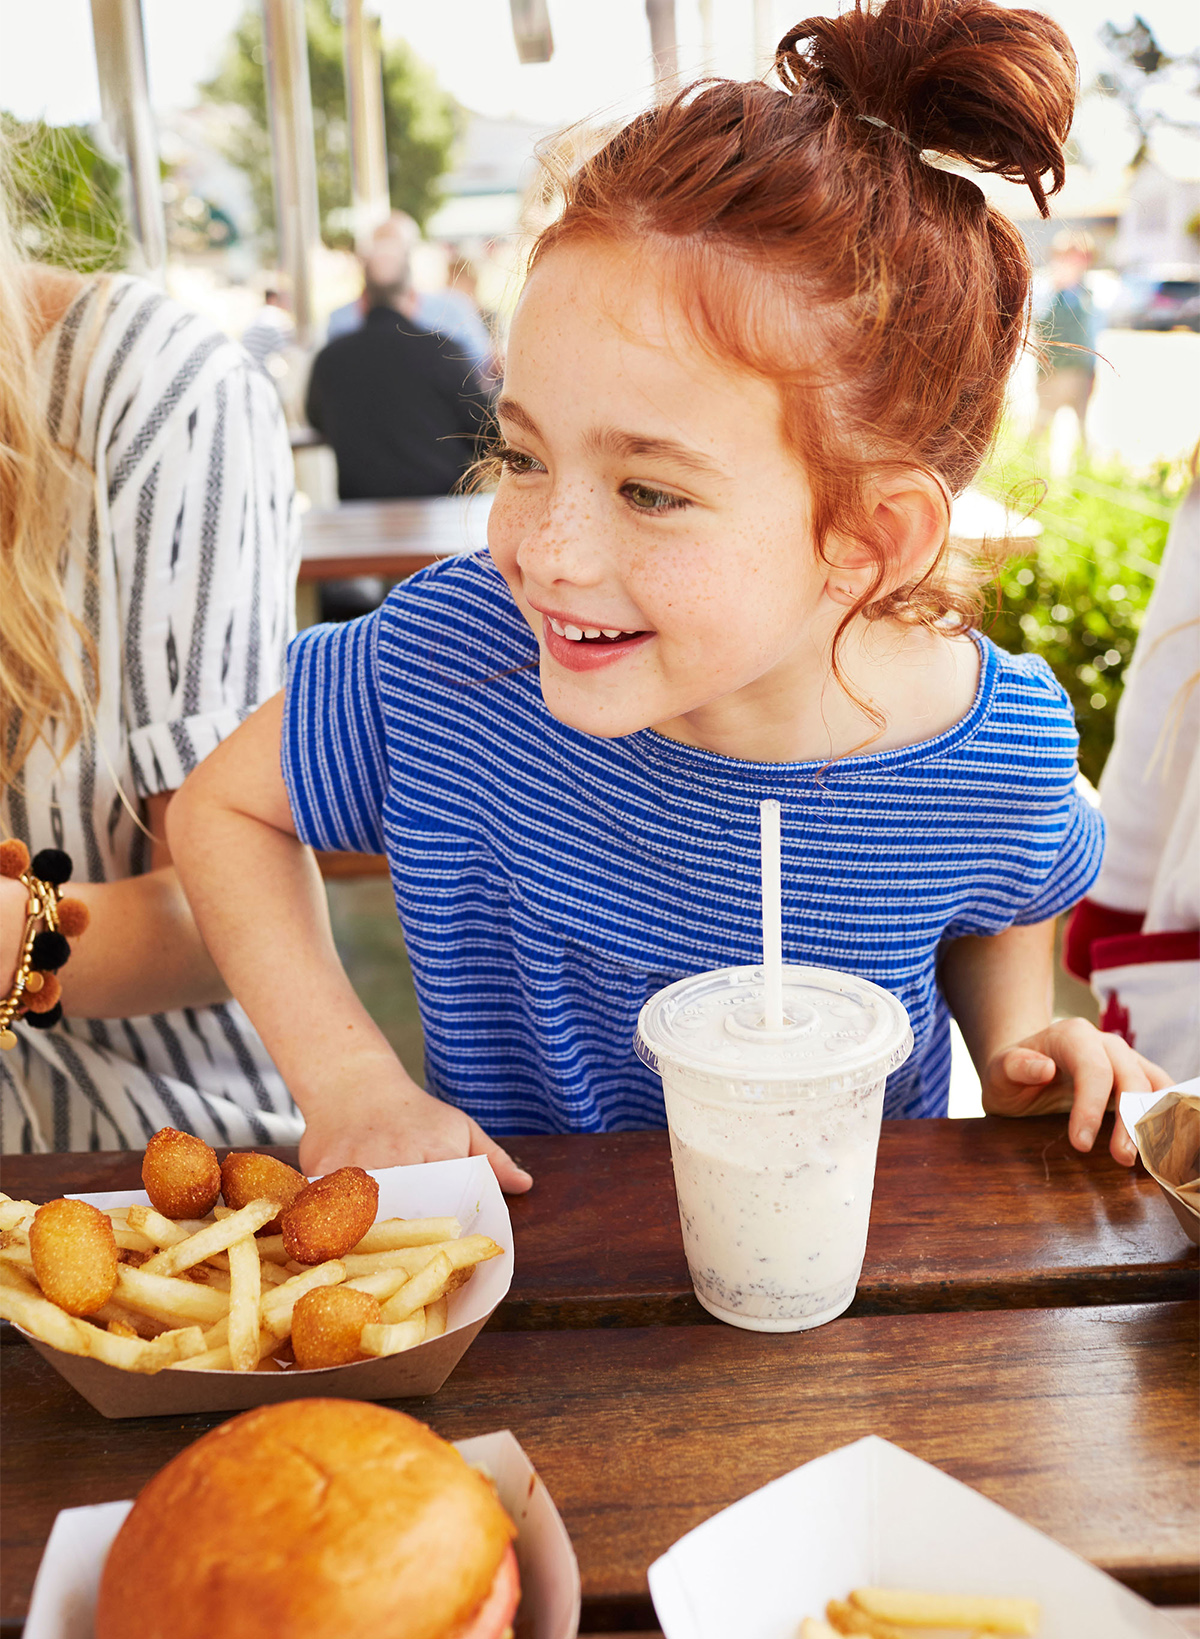 How Junk Food Could Help Your Picky Eater